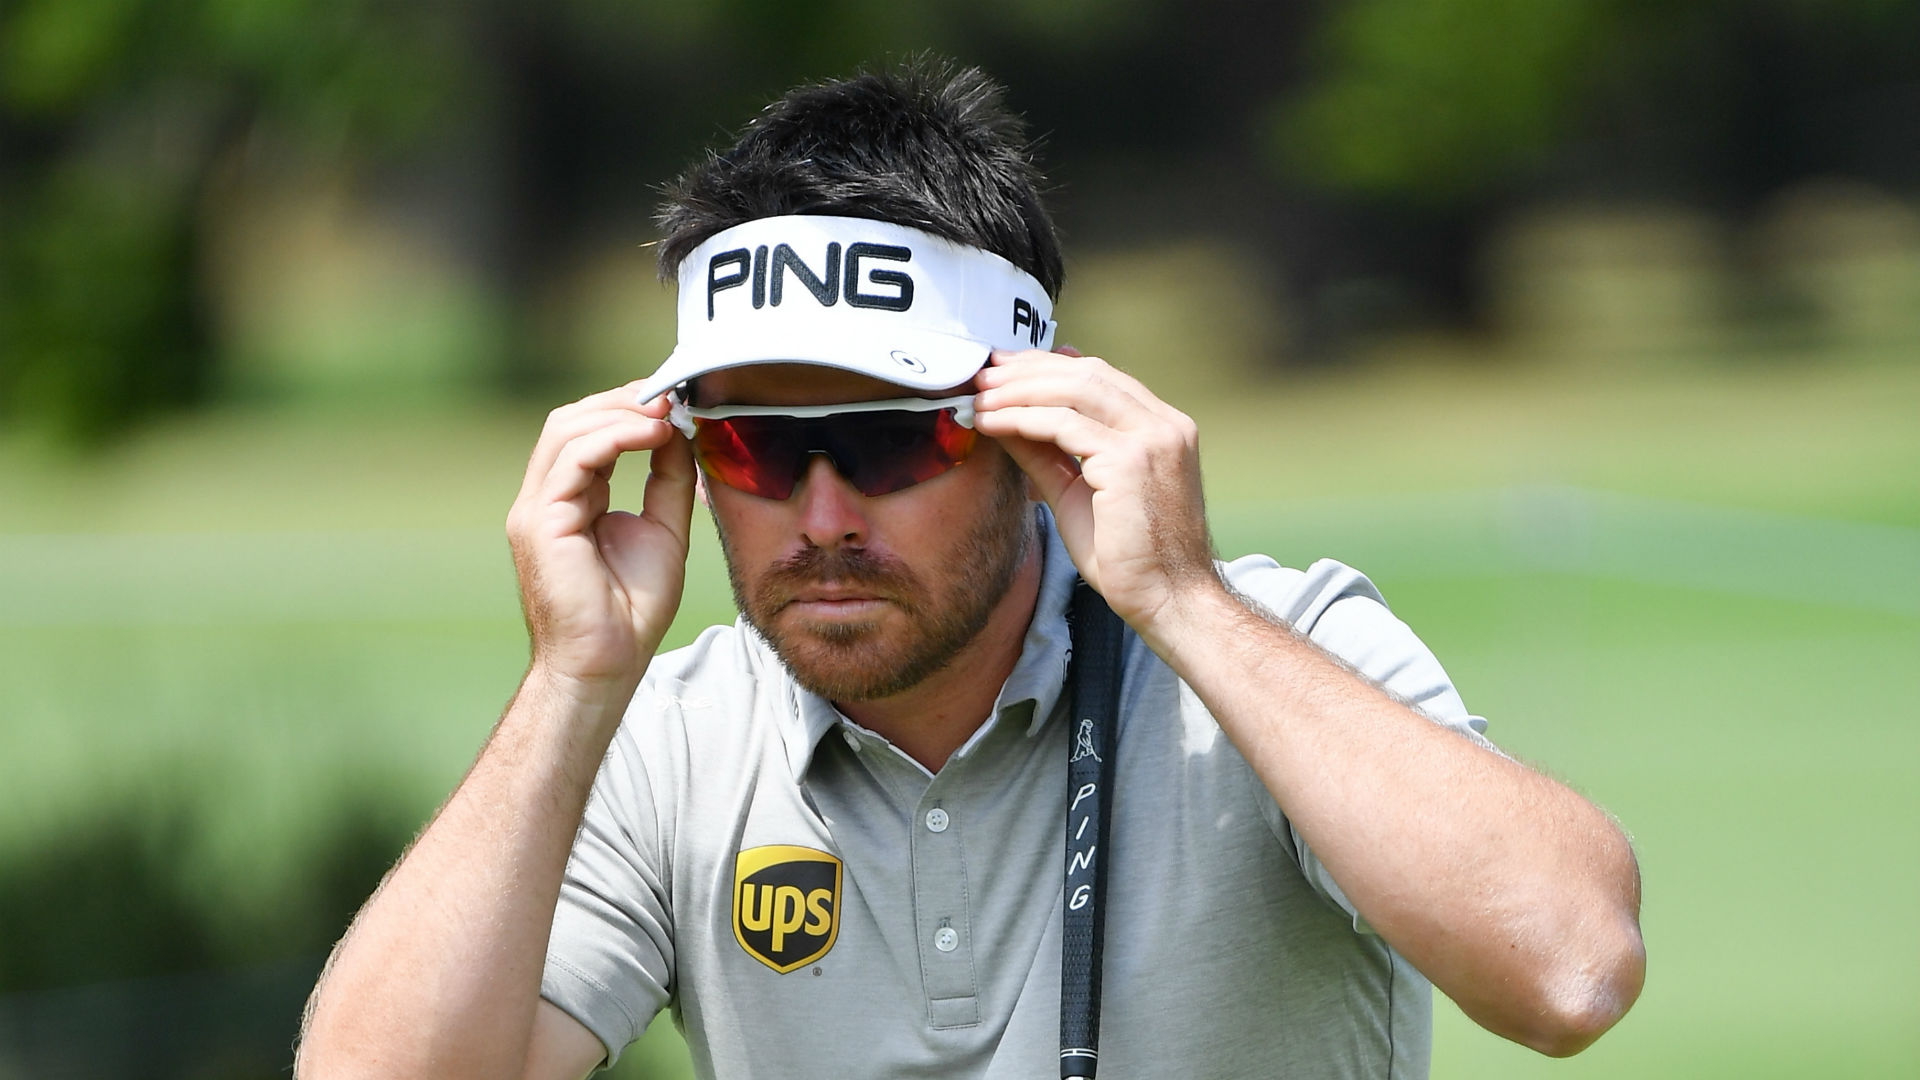 Oosthuizen seizes South African Open lead as Schwartzel stumbles